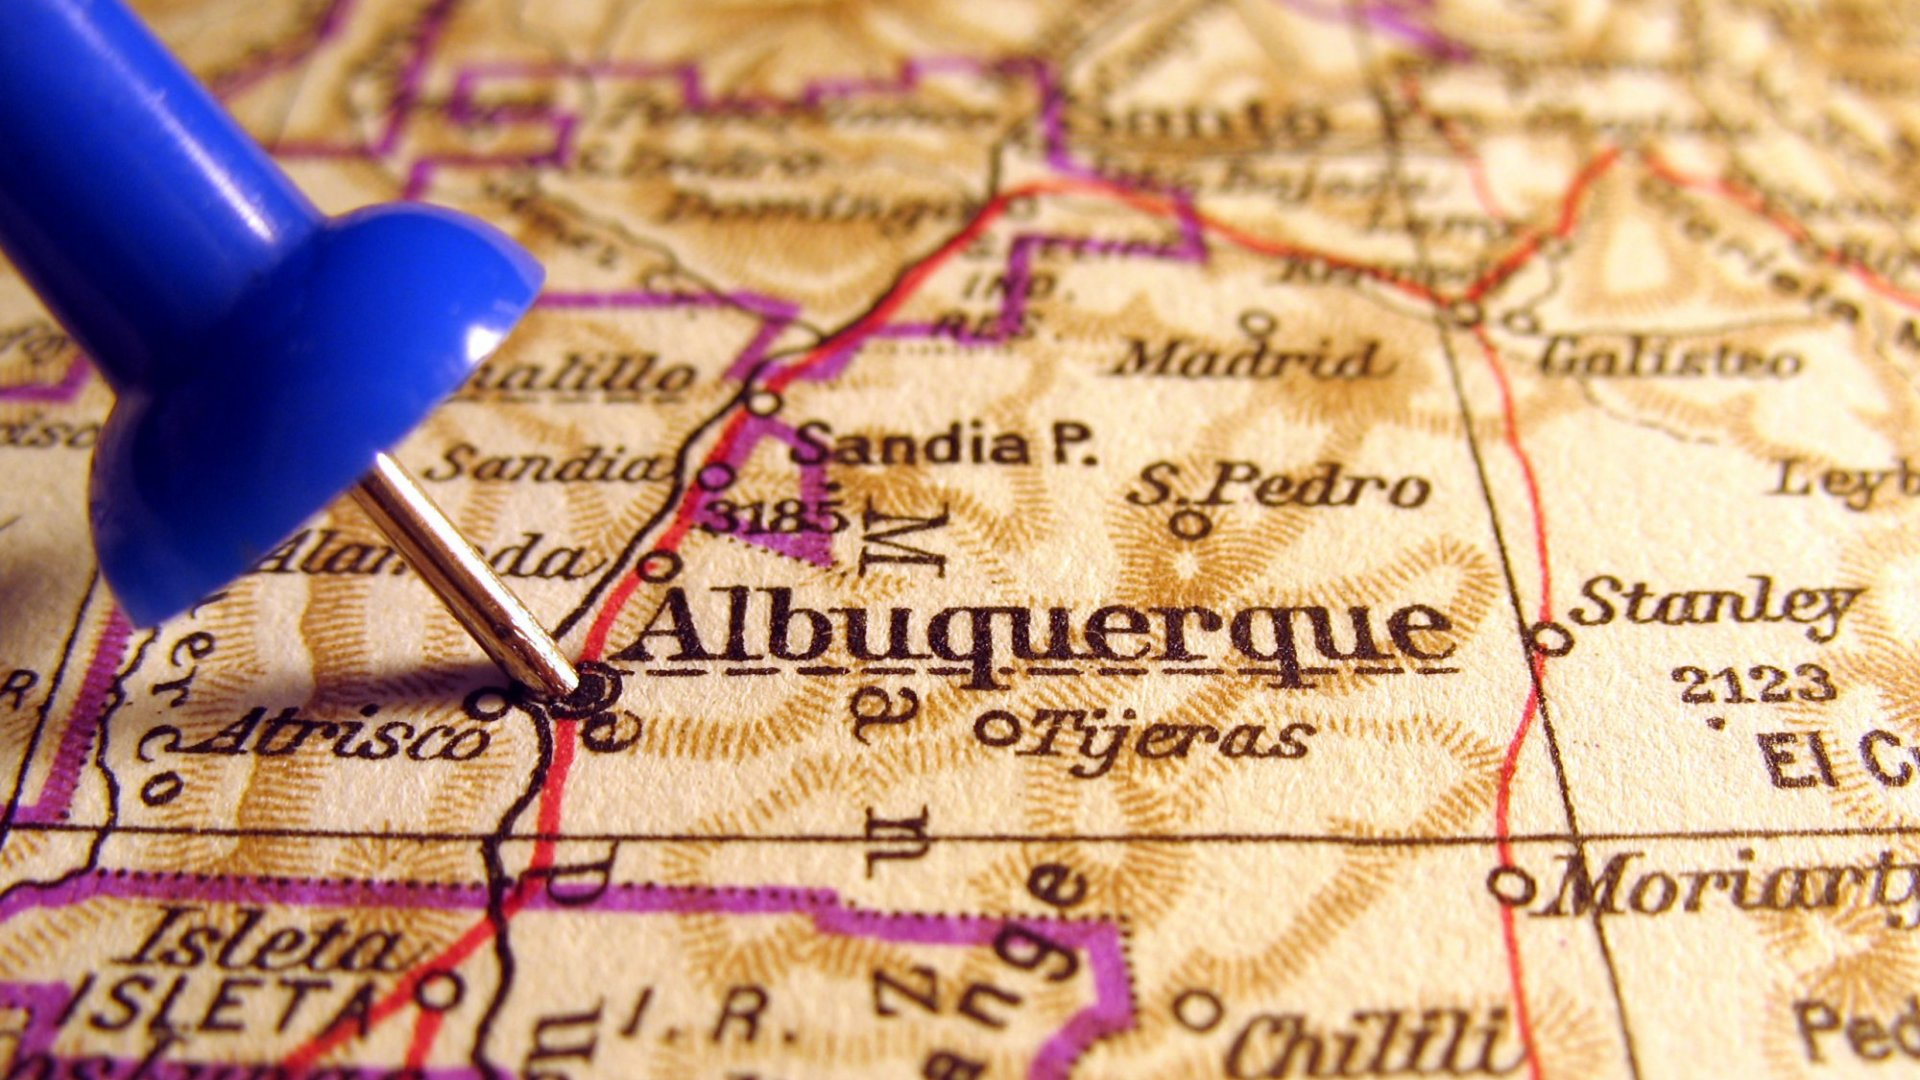 We Could Use Nuclear Research to Fight a War. Or, We Could Use it to Fuel Innovation (Like in Albuquerque)